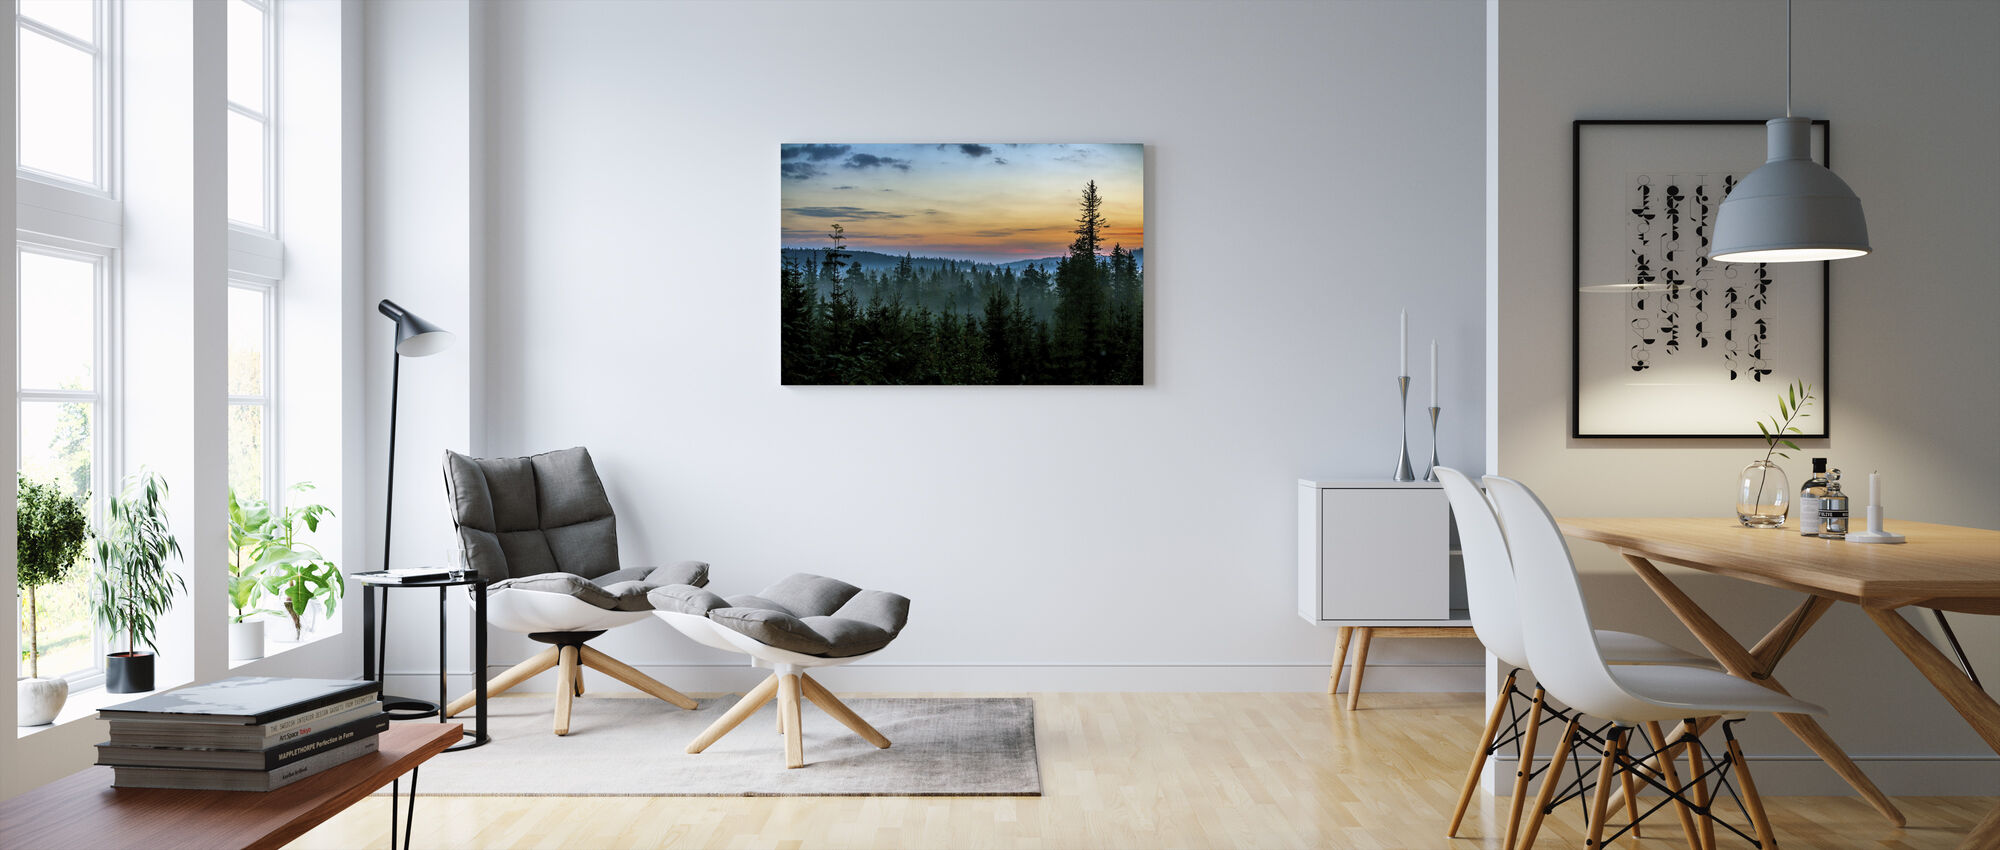 Early Morning in Fir Forest - Canvas print - Living Room